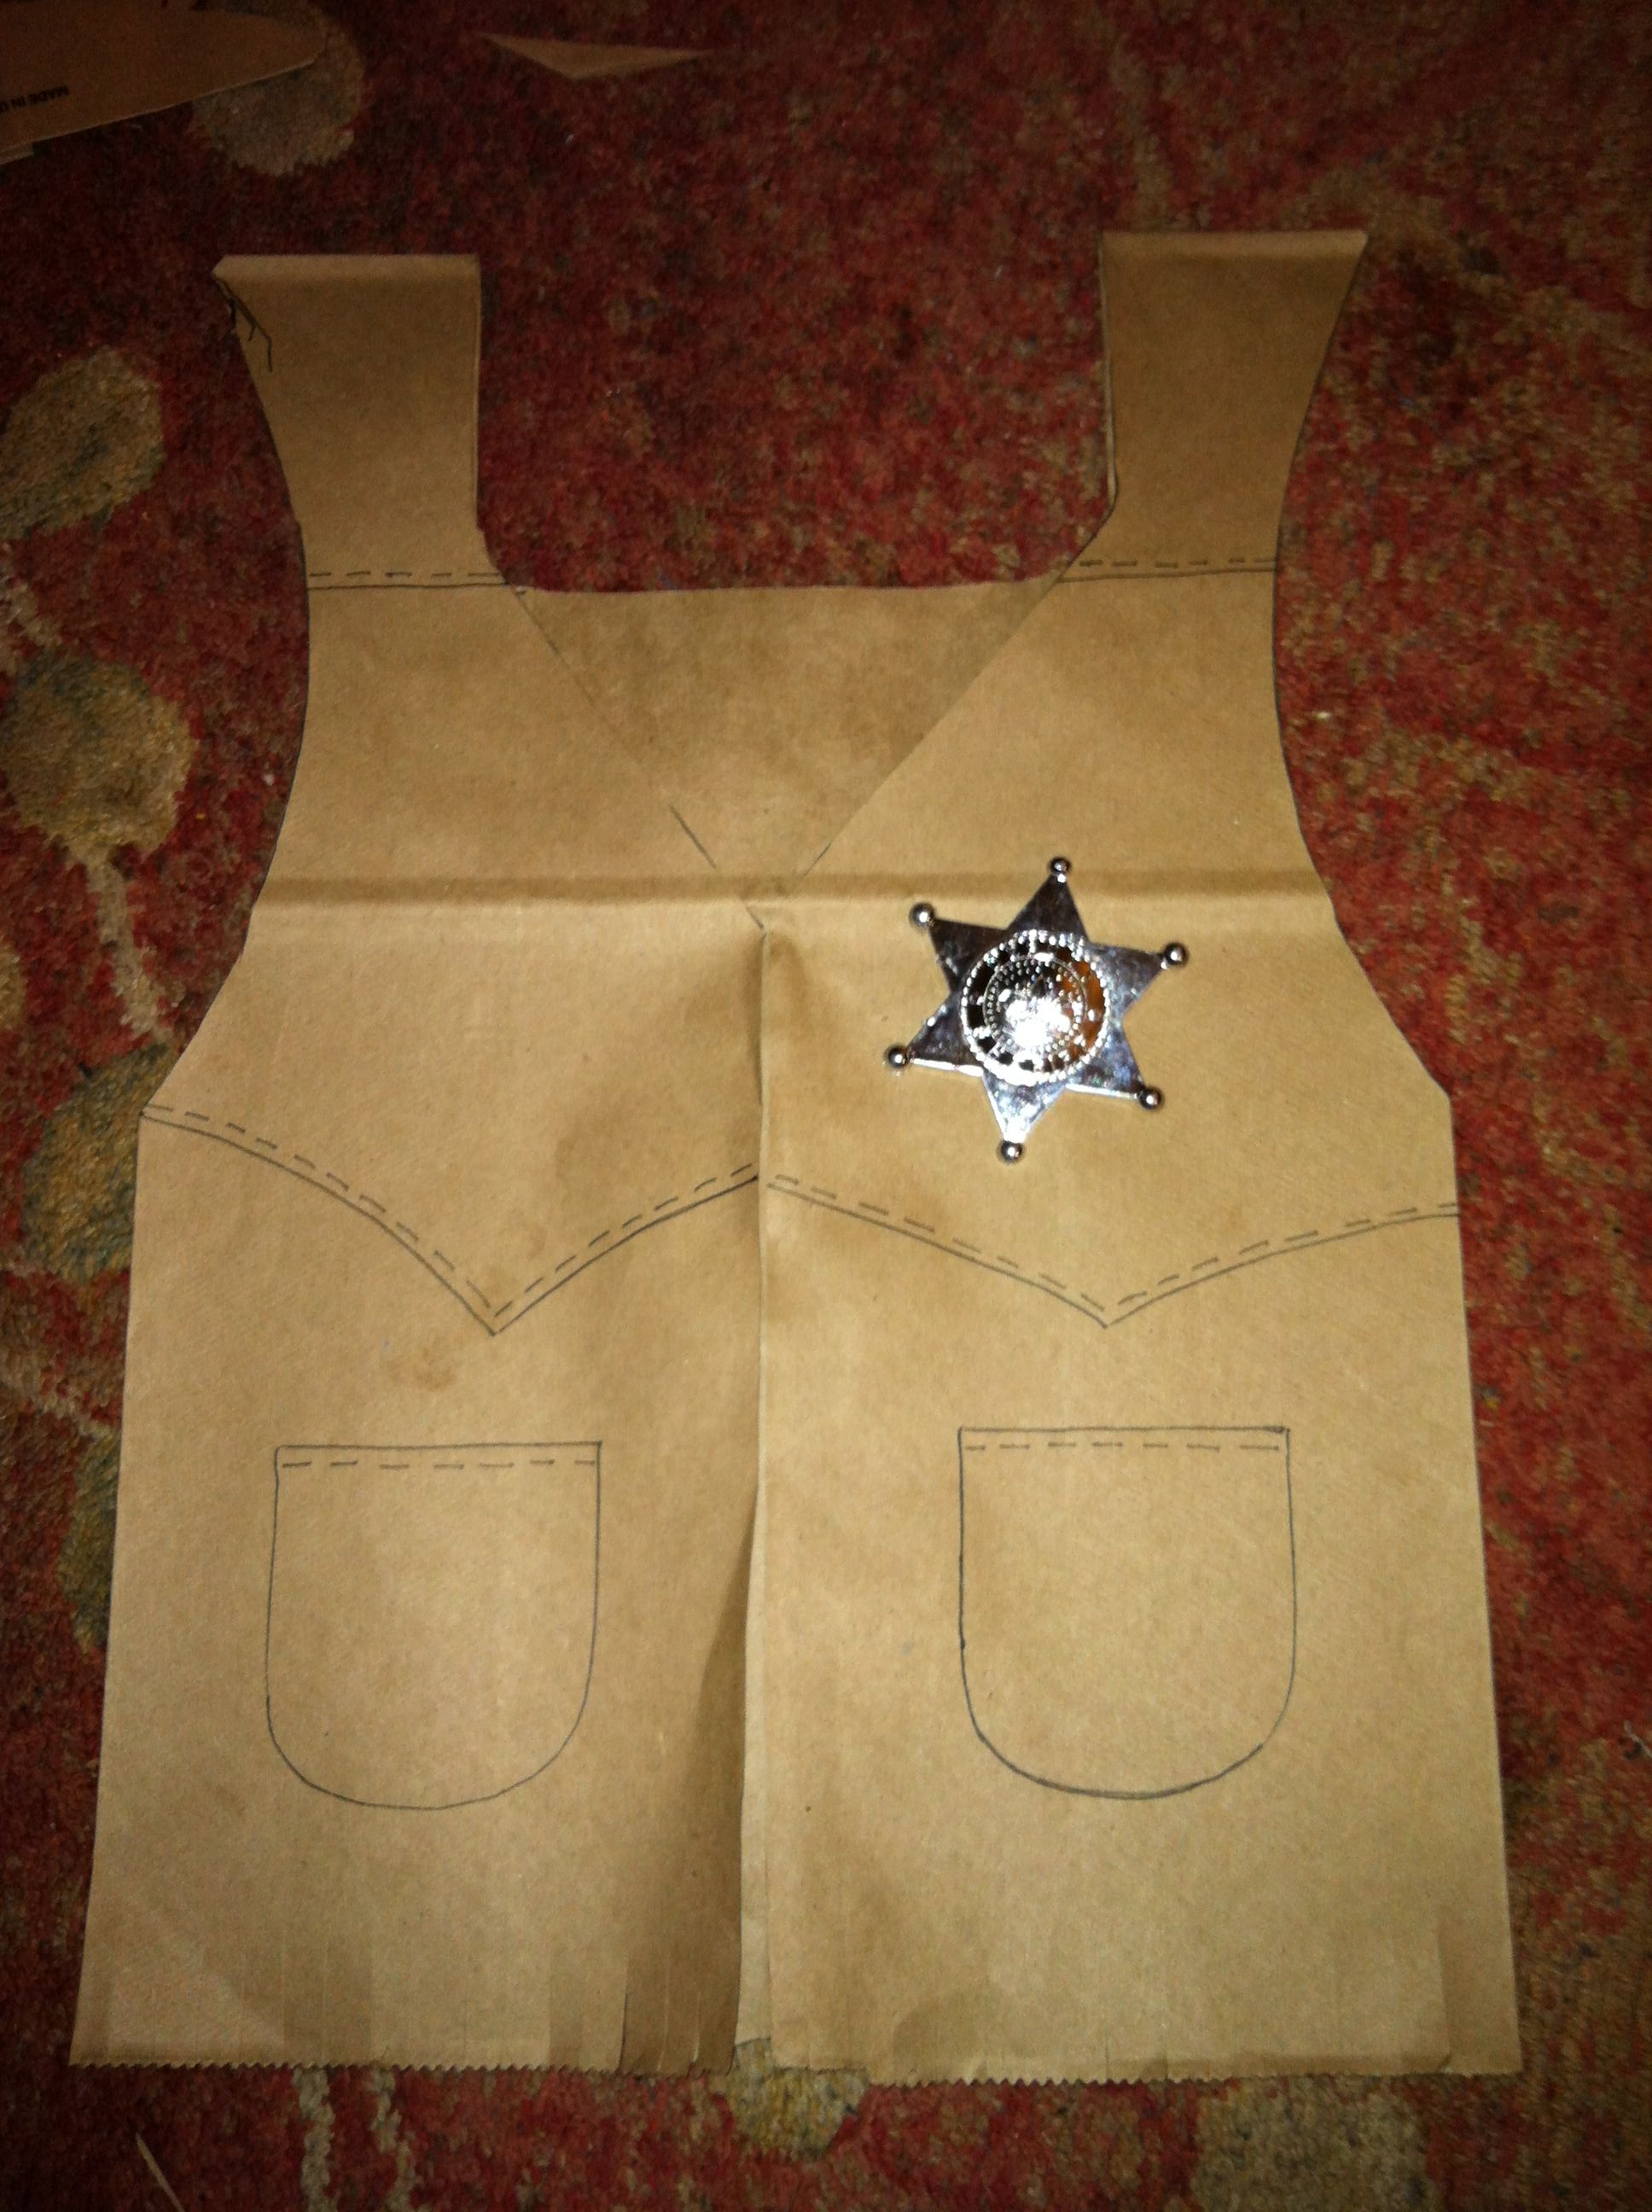 I Made These Vests For My Kids Cowboy Party Brown Paper Bag And